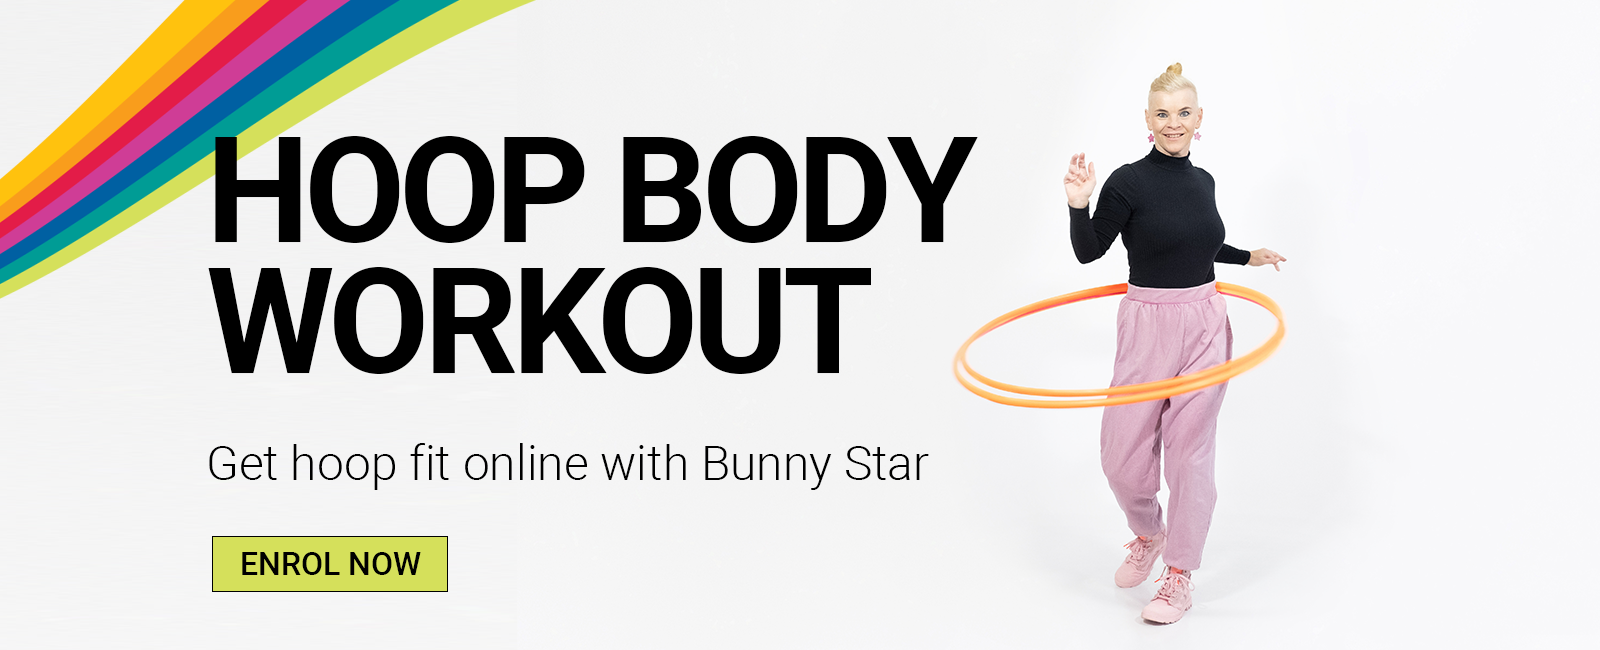 Online Hula Hoop Course with Bunny Star - Hoop Body Workout